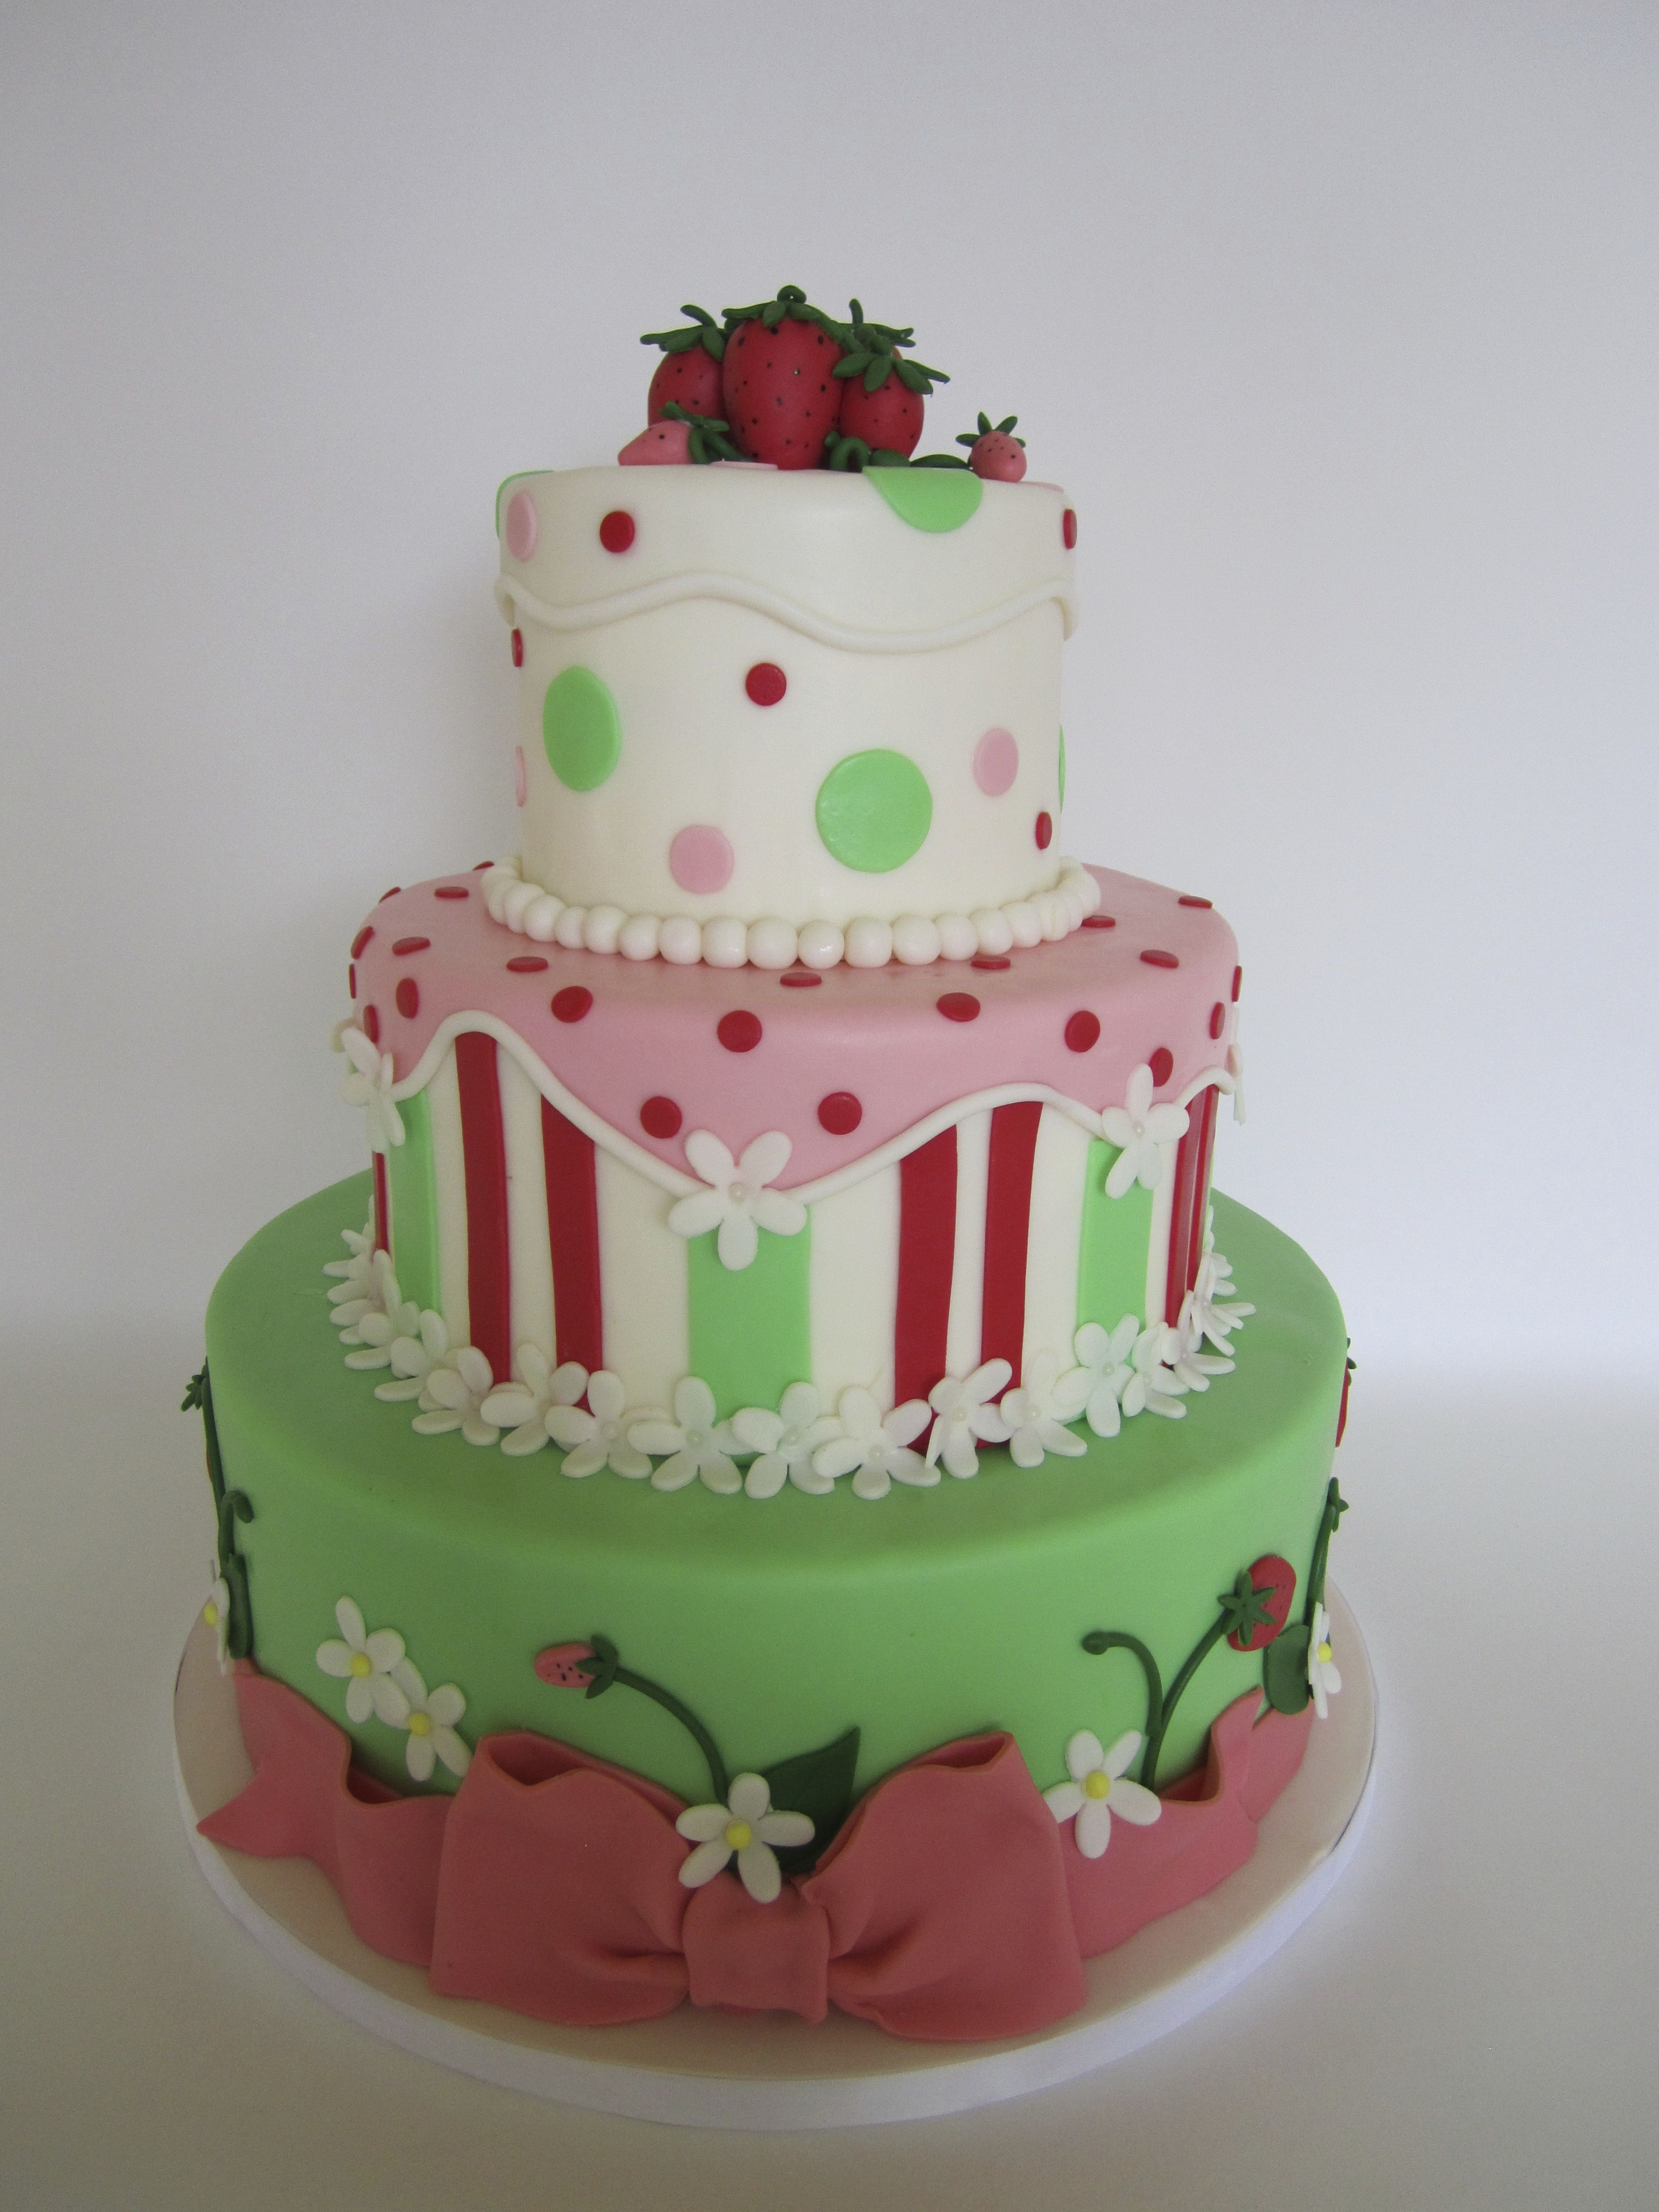 Nothing short about this strawberry shortcake!